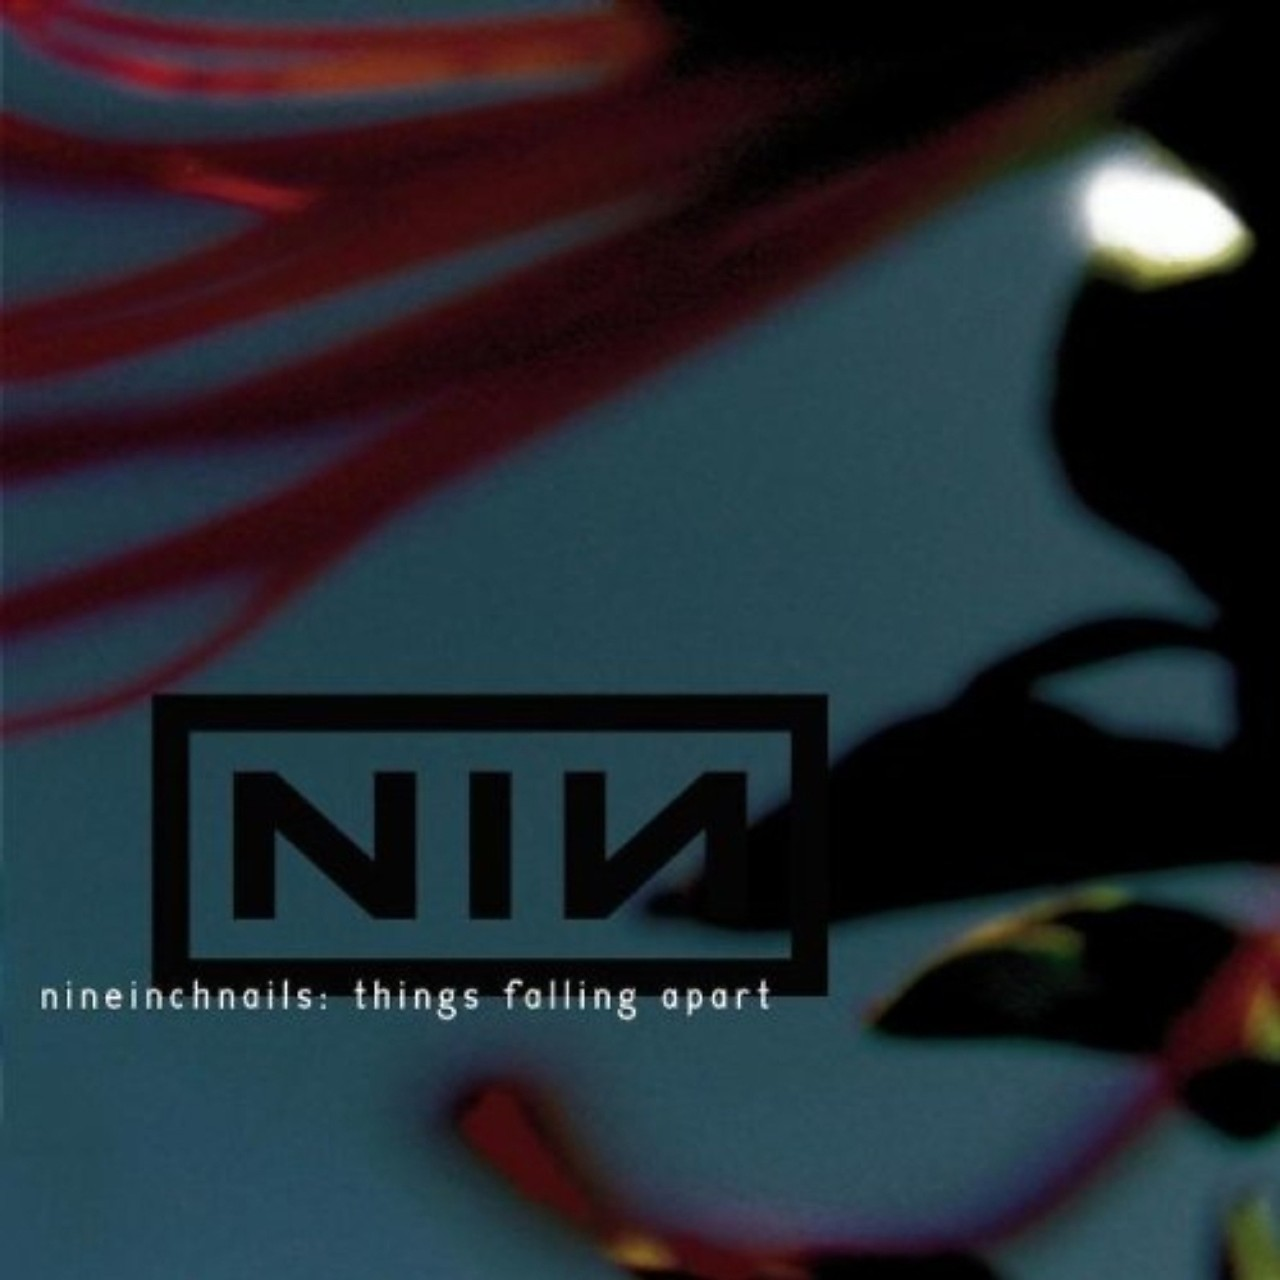 Things Falling Apart by Nine Inch Nails | Arena Music